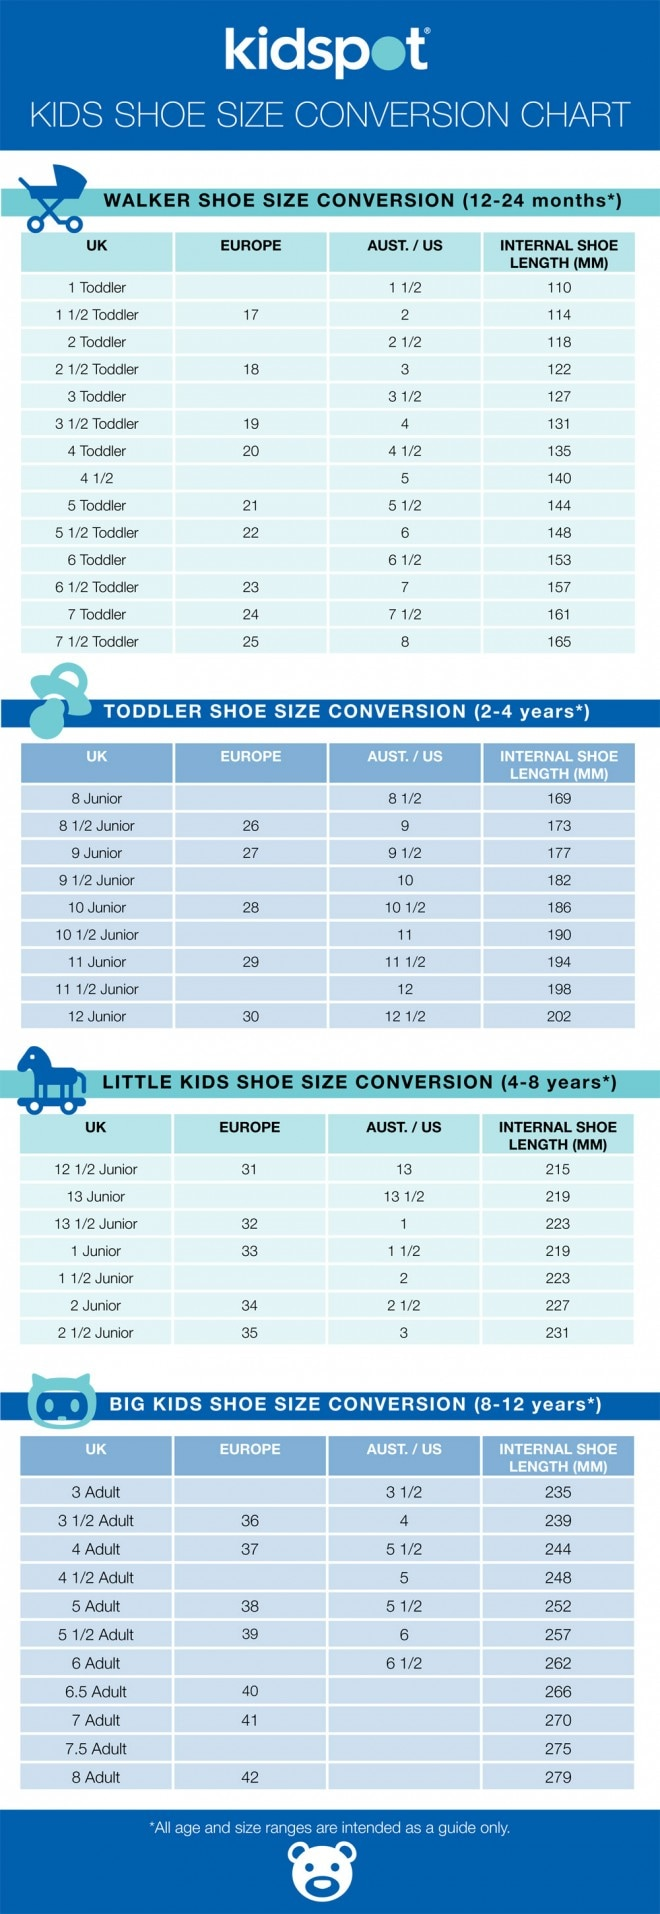 "If you want to find the perfect shoe size for a baby, infant, toddler or little kid, the infant's shoe size chart above will help you with kids size conversion. Whether you are looking for little kids shoe sizes or big kids shoe sizes, just find look for the age of the child in the first column (labeled with ""Age"")."